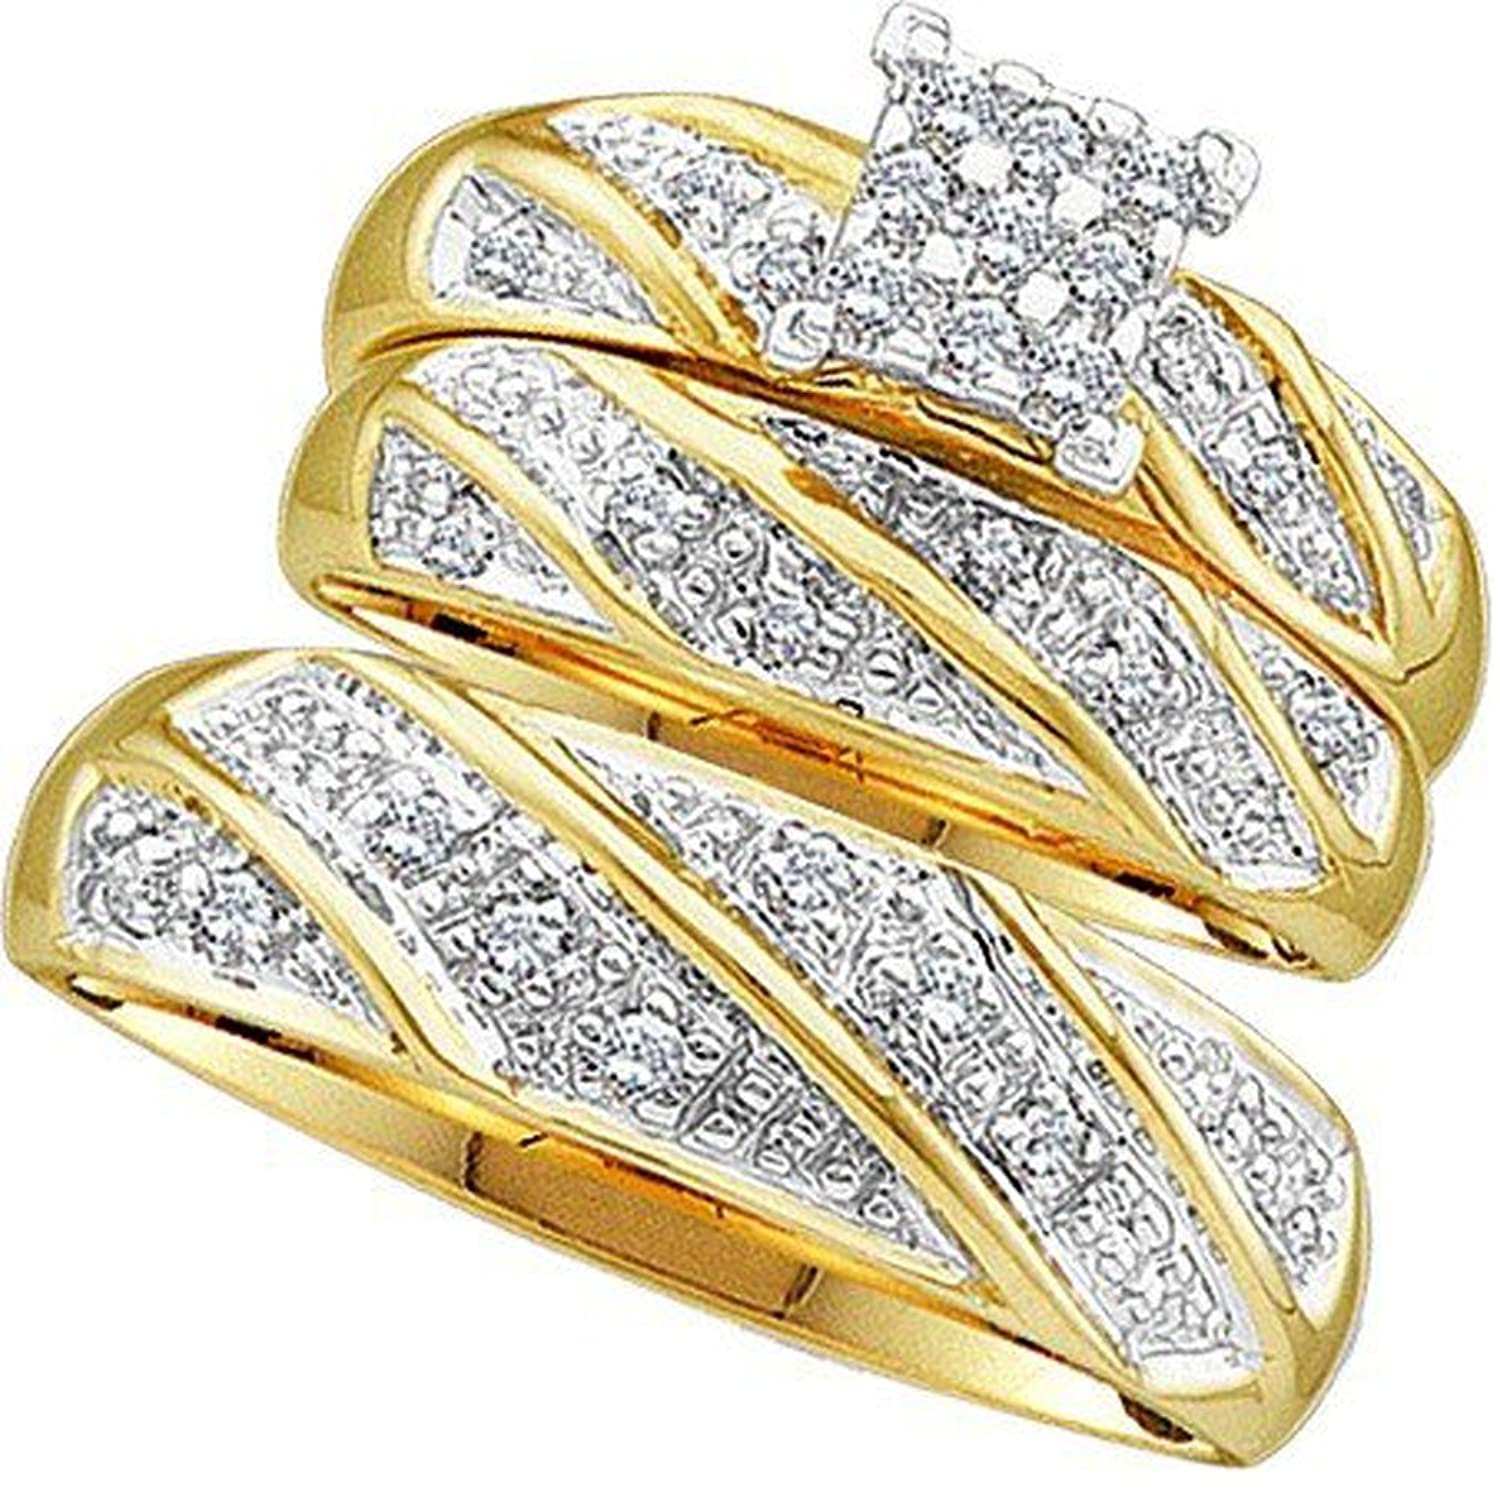 amazoncom 030 carat ctw 10k yellow gold round cut diamond men womens cluster engagement ring trio set 13 ct jewelry - Wedding Rings Amazon